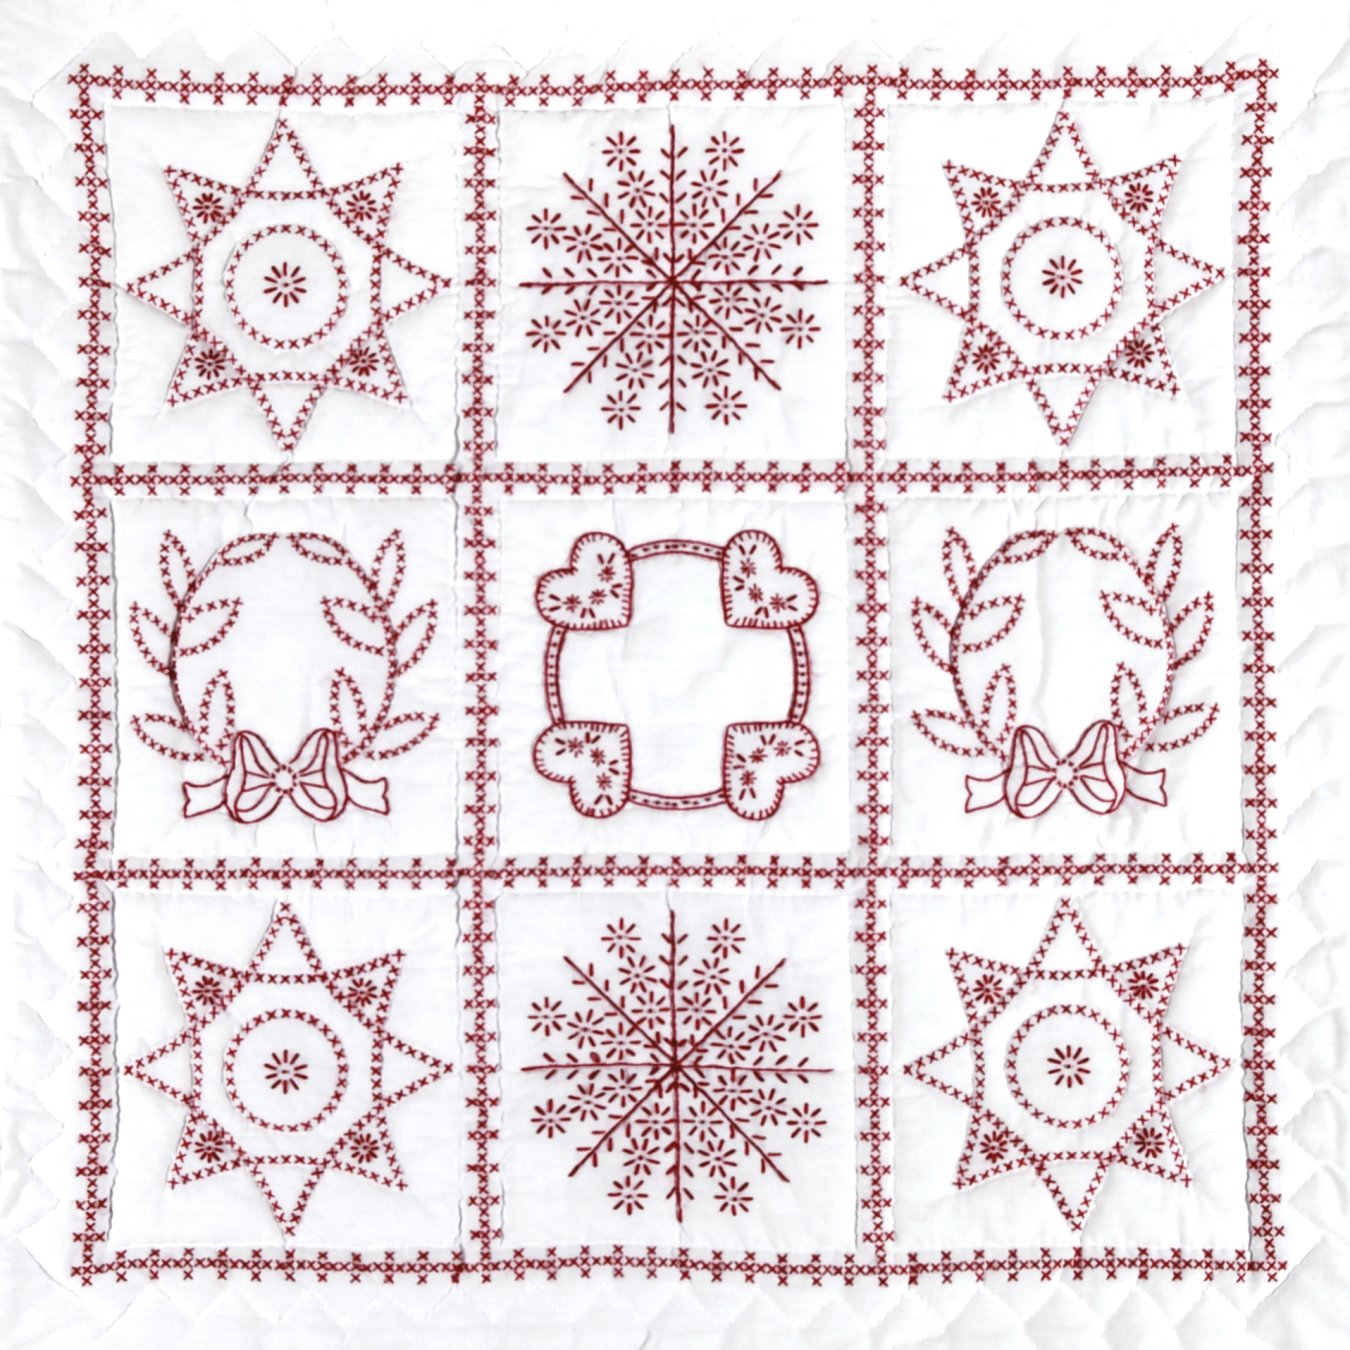 0739-WALL QUILT-36x36-4